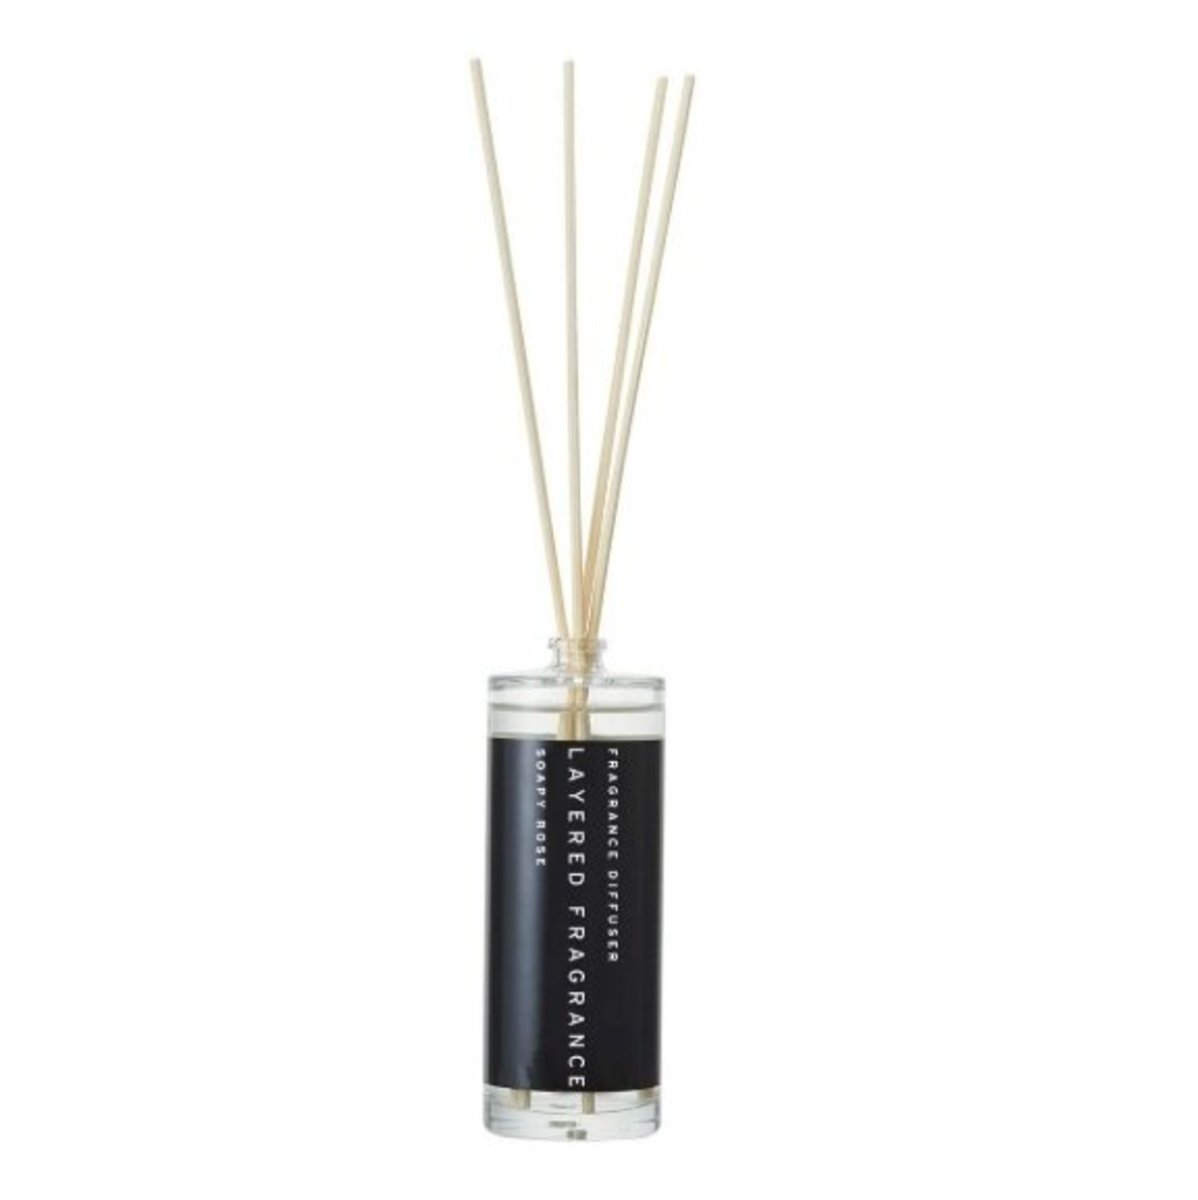 Layered F. Diffuser 100ml - Soapy Rose